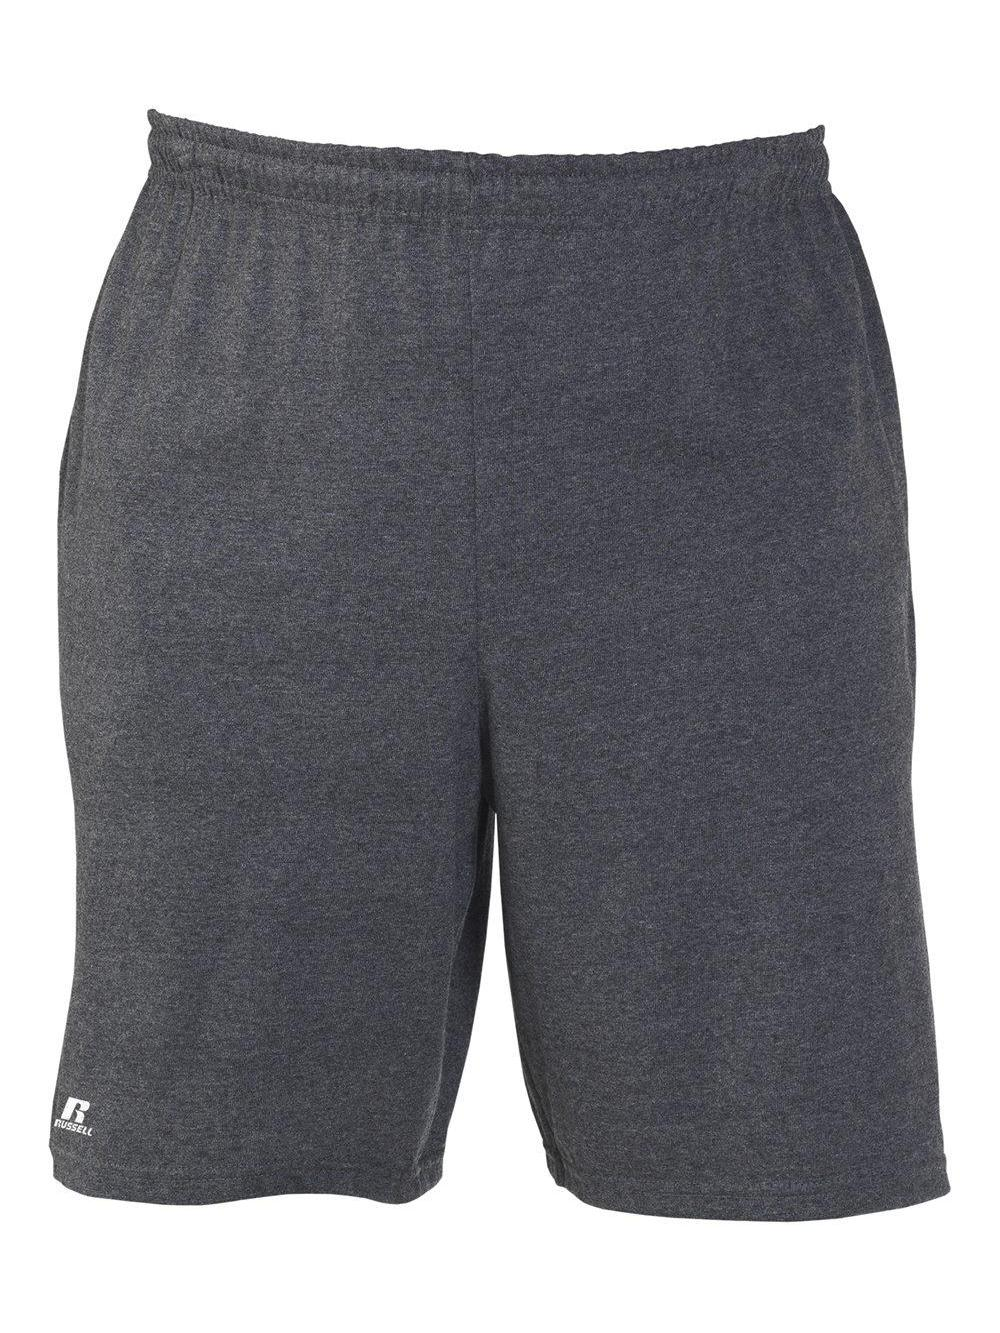 Russell-Athletic-Essential-Jersey-Cotton-Shorts-with-Pockets-25843M thumbnail 8